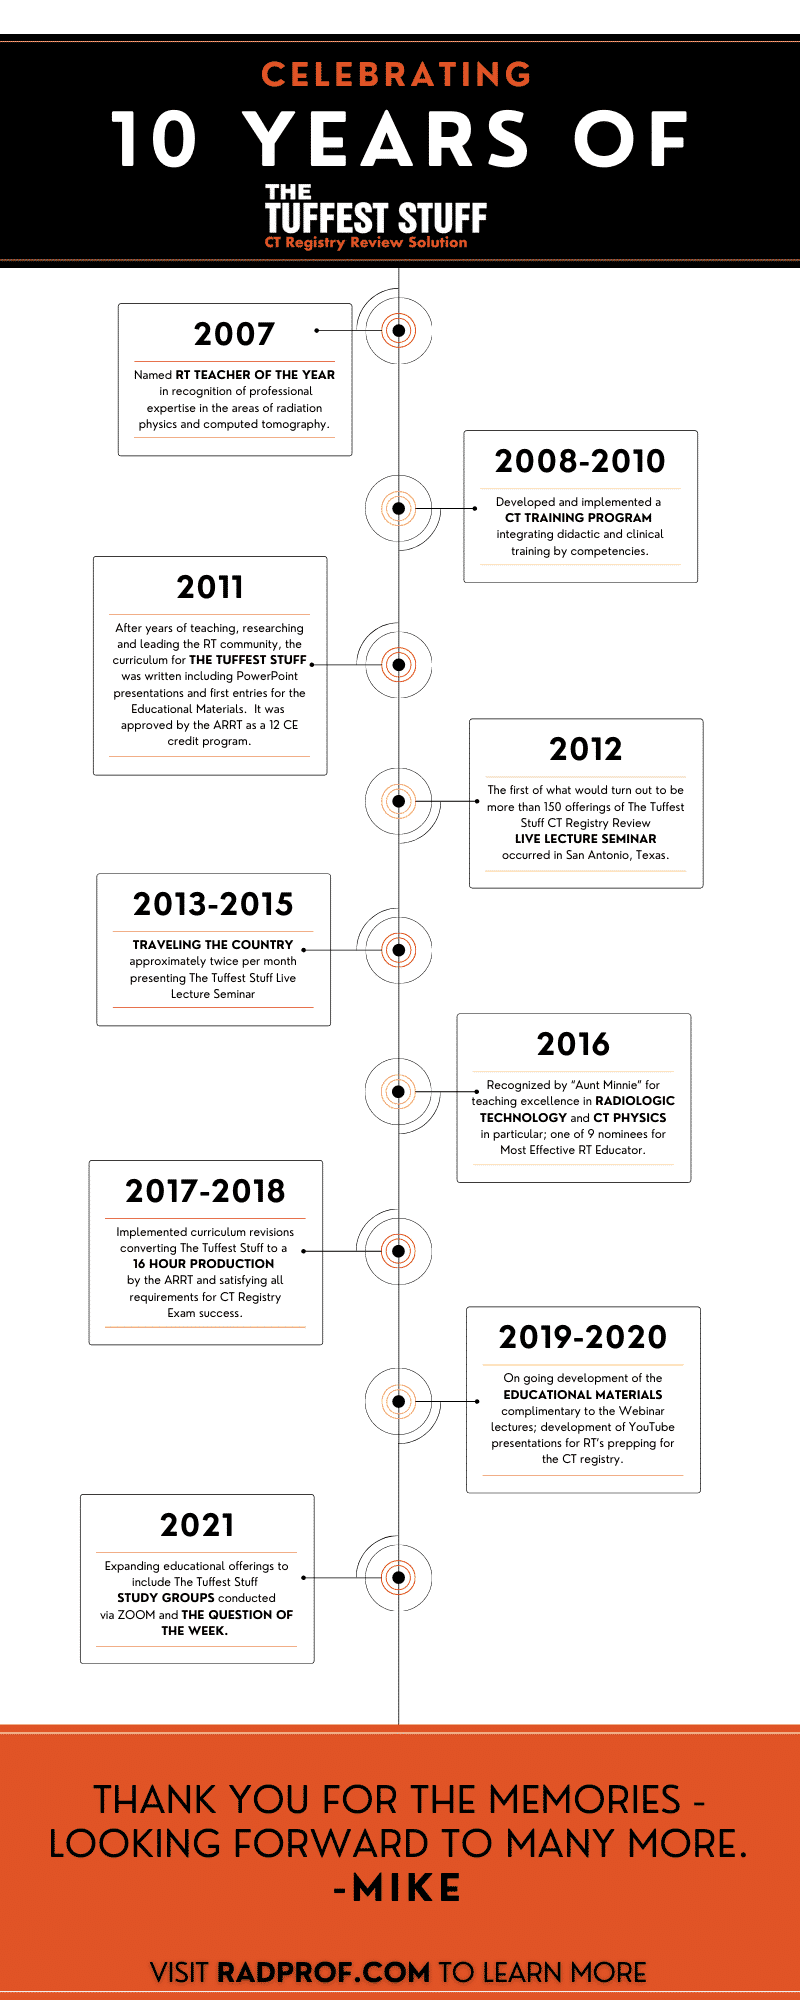 Timeline Infographic of the history of The Tuffest Stuff